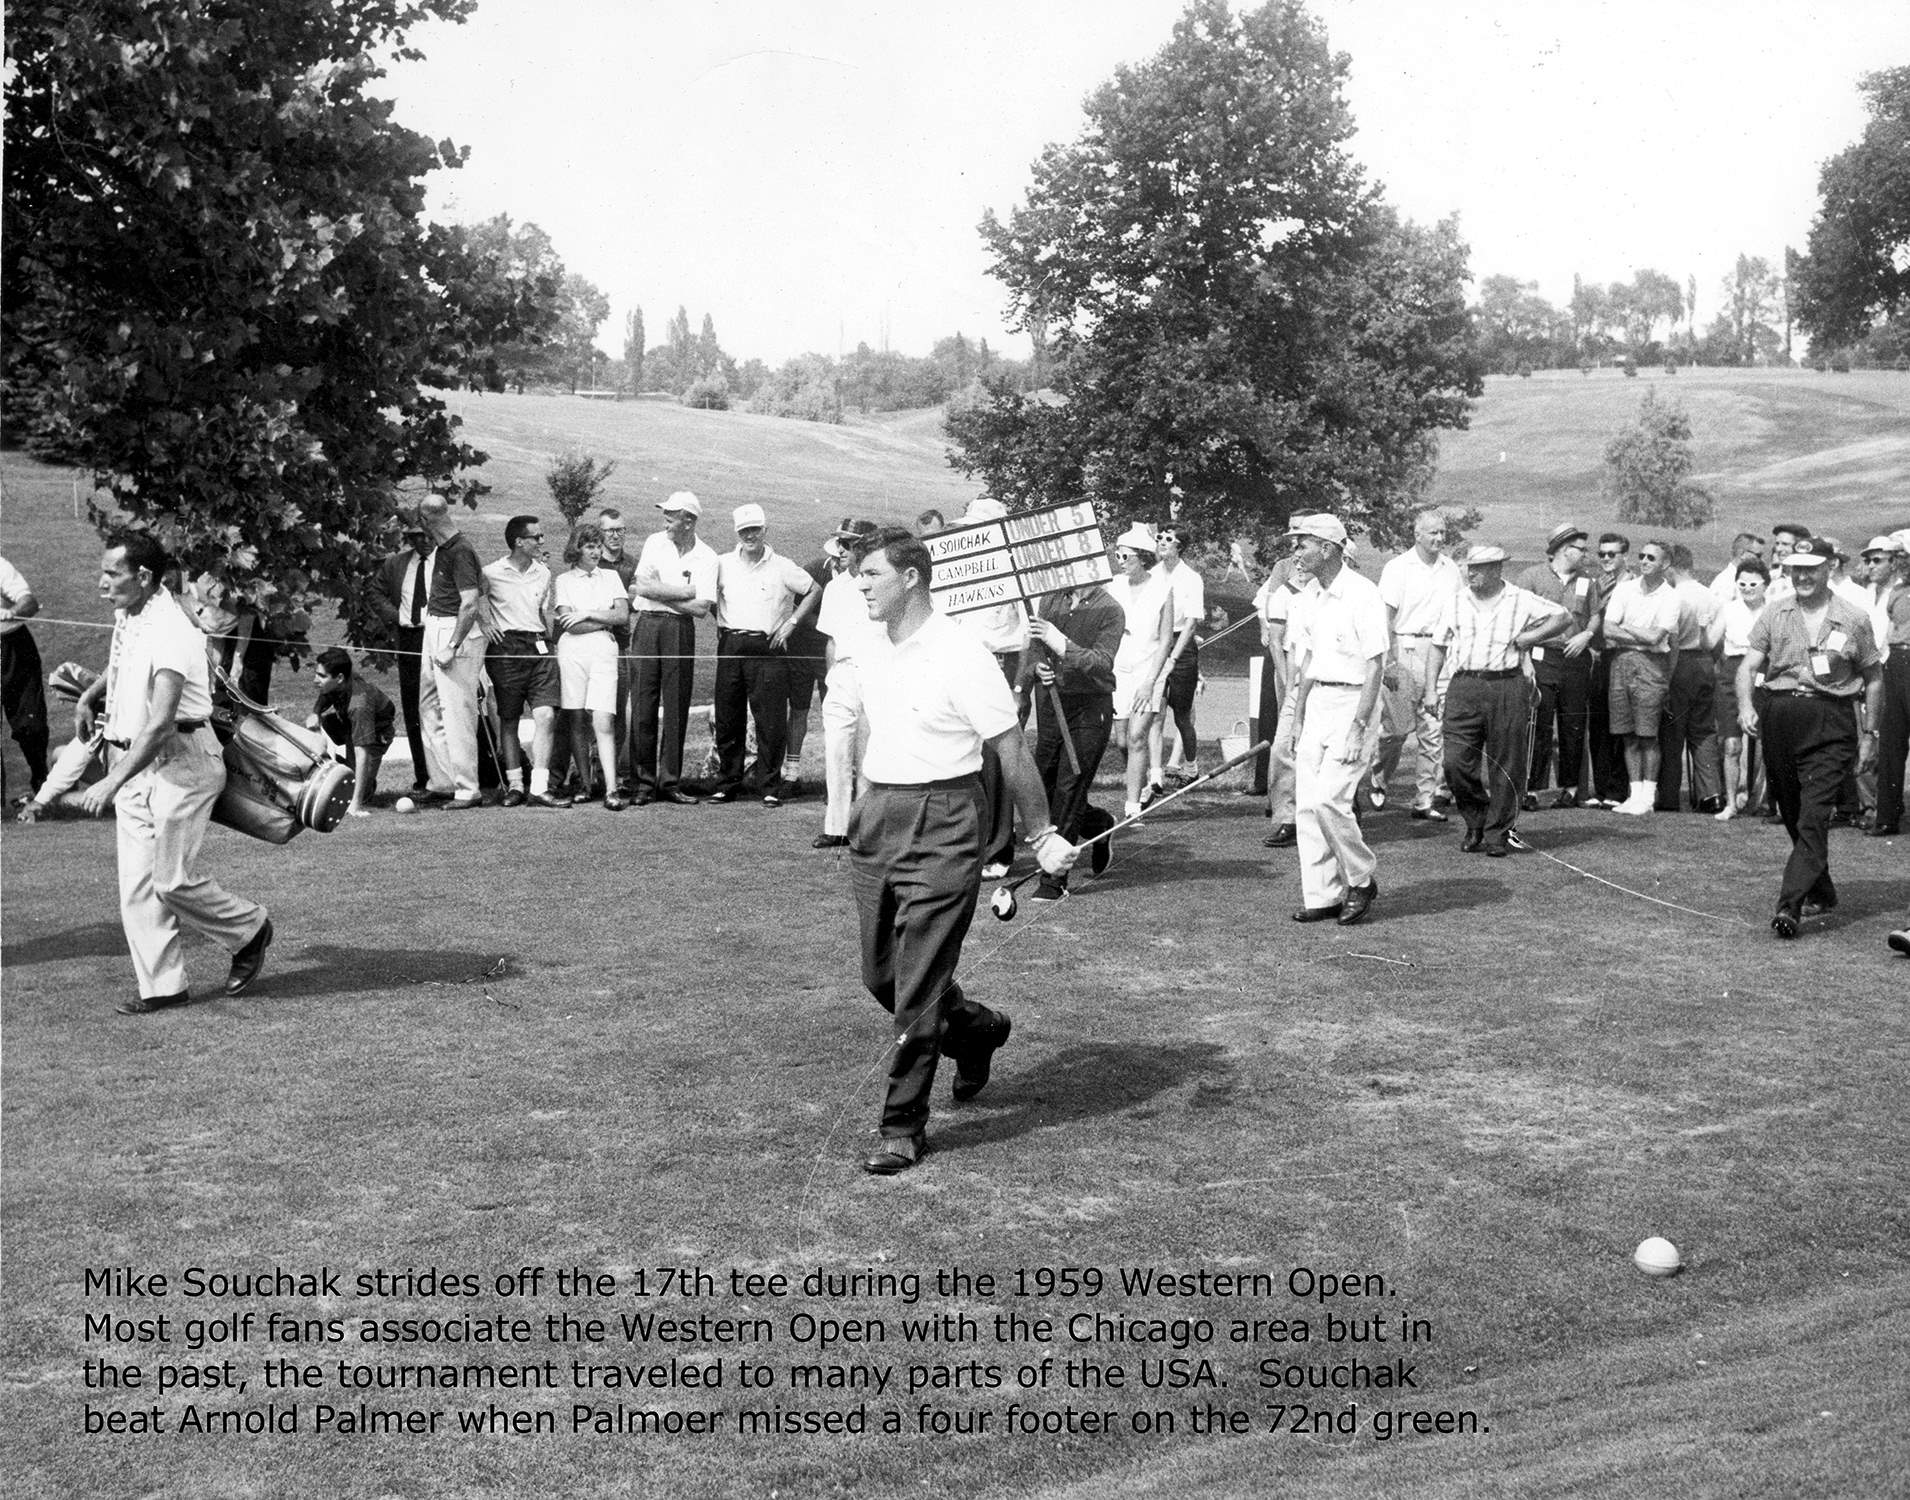 Mike-Souchak-eventual-champion-1959-Western-Open